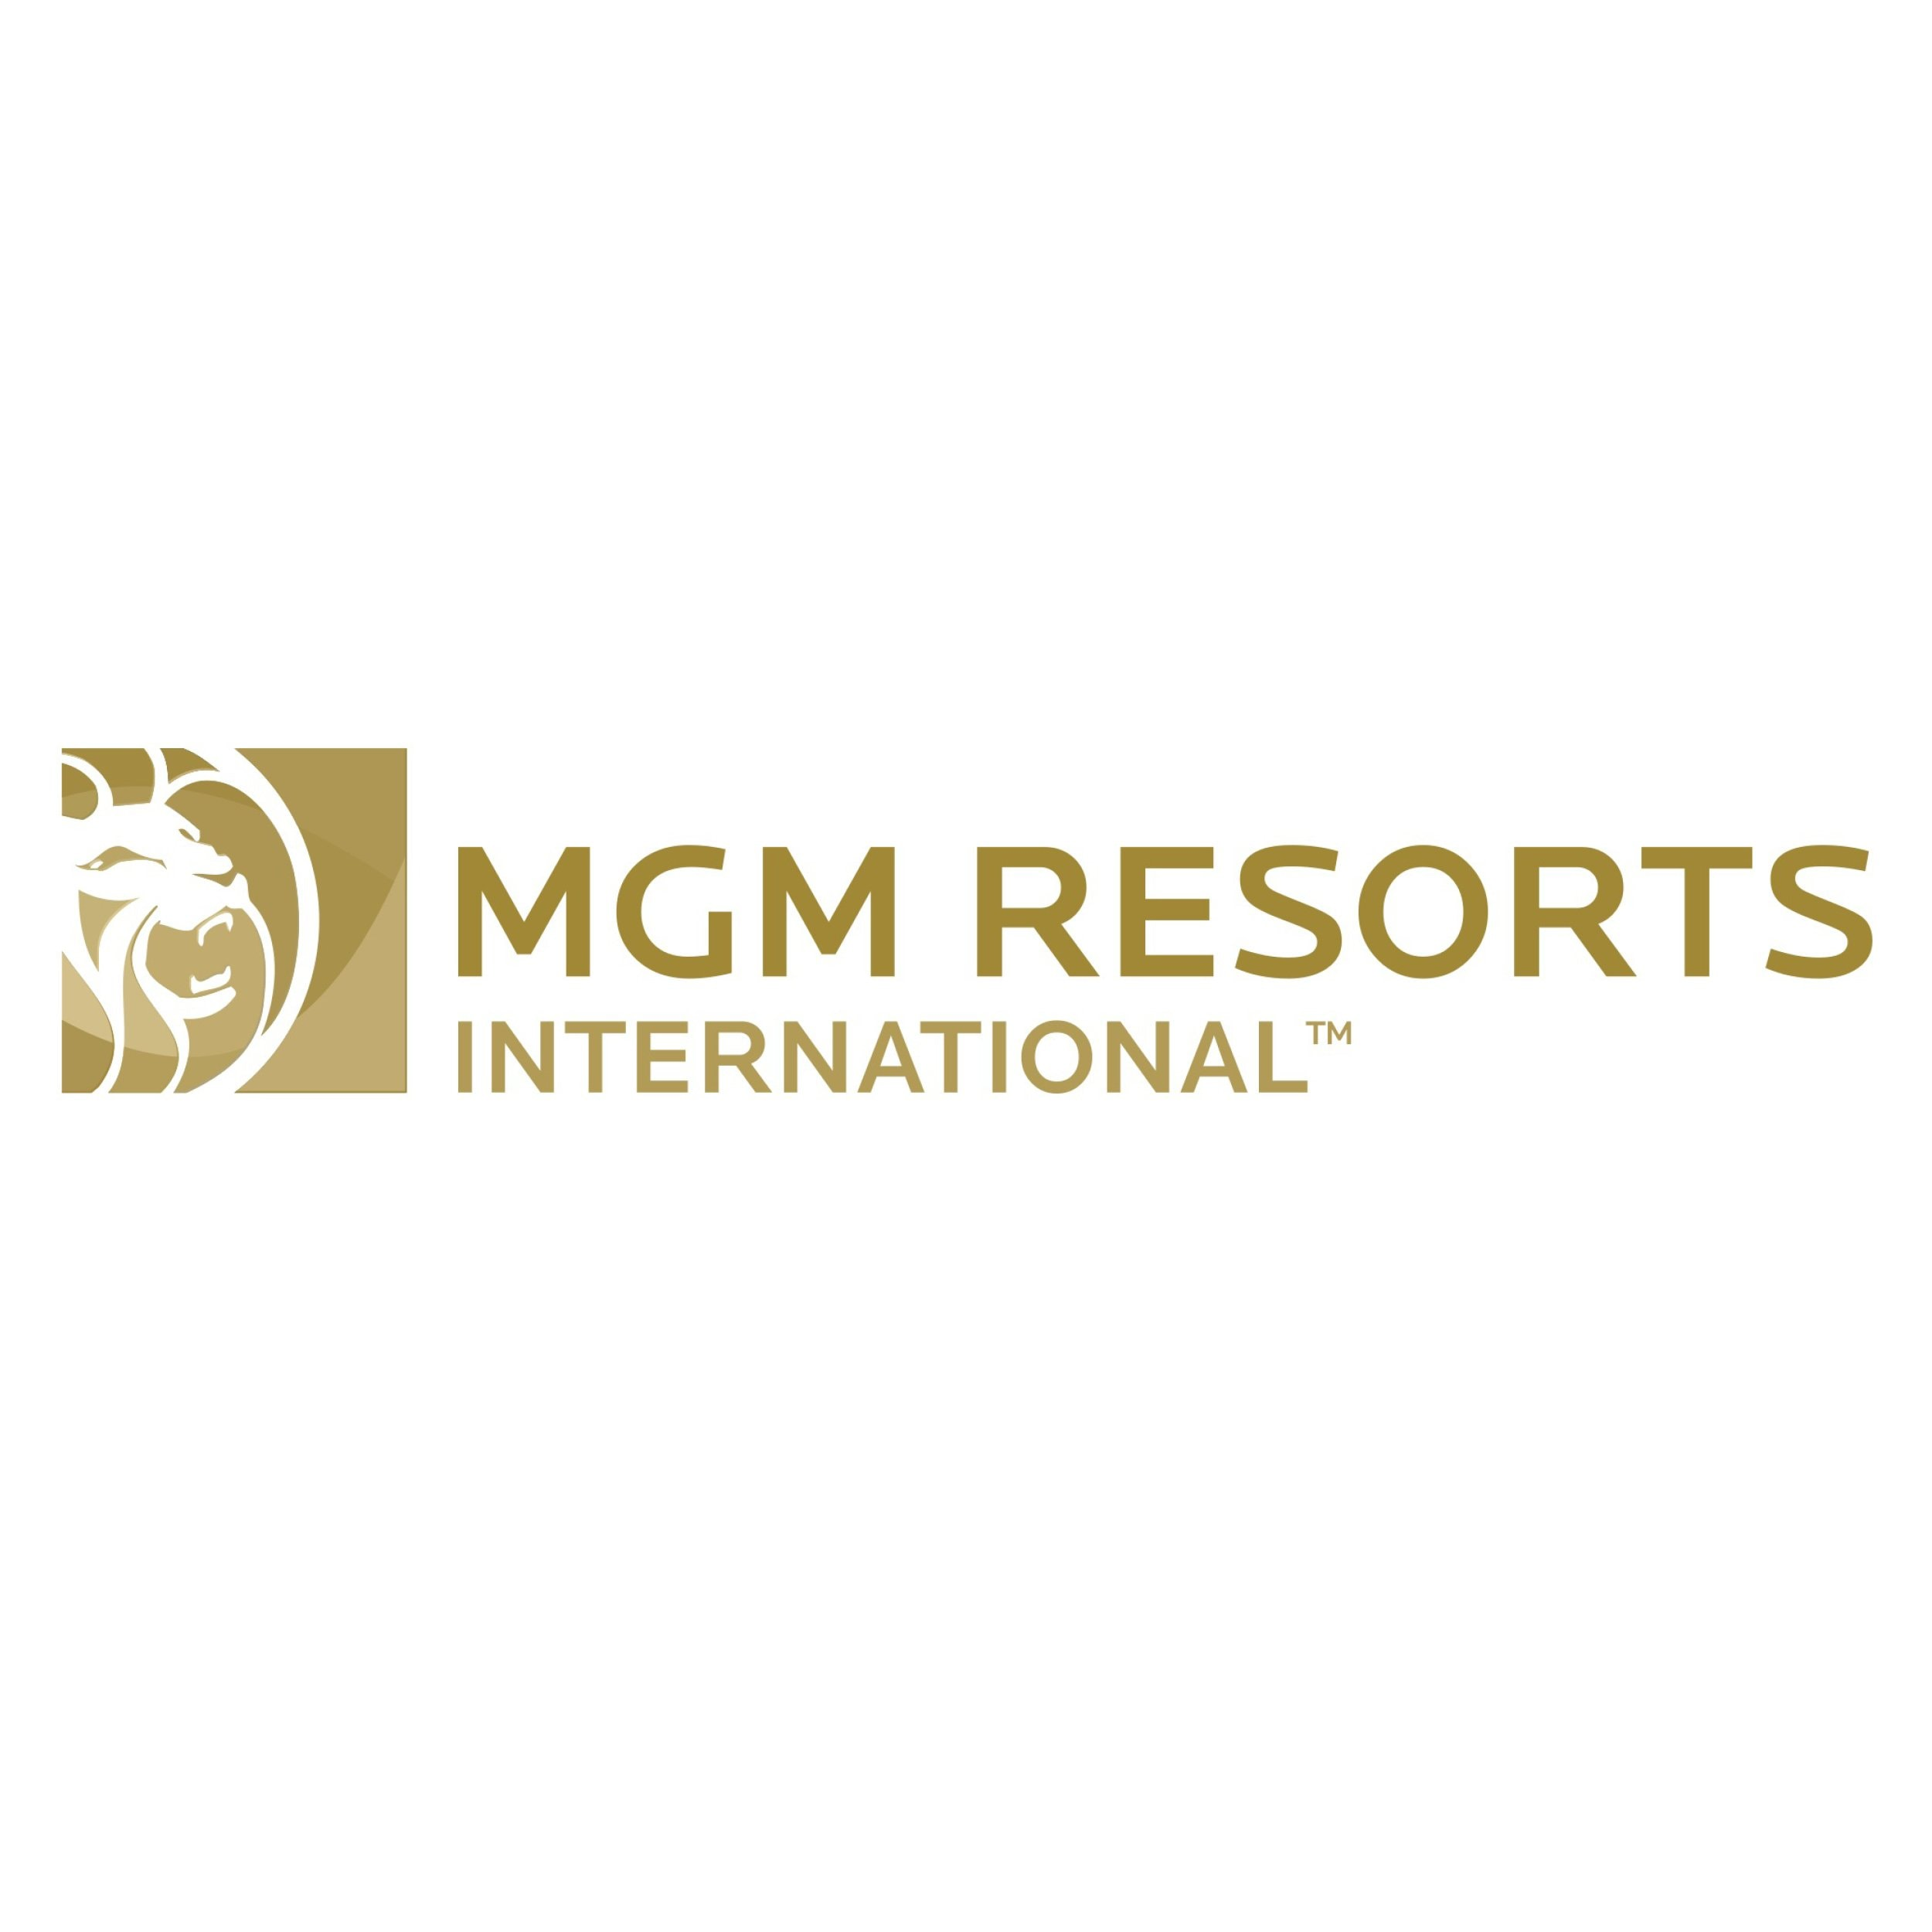 PSC Welcomes MGM's VP of Corporate Sustainability at SuperZoo Networking Event